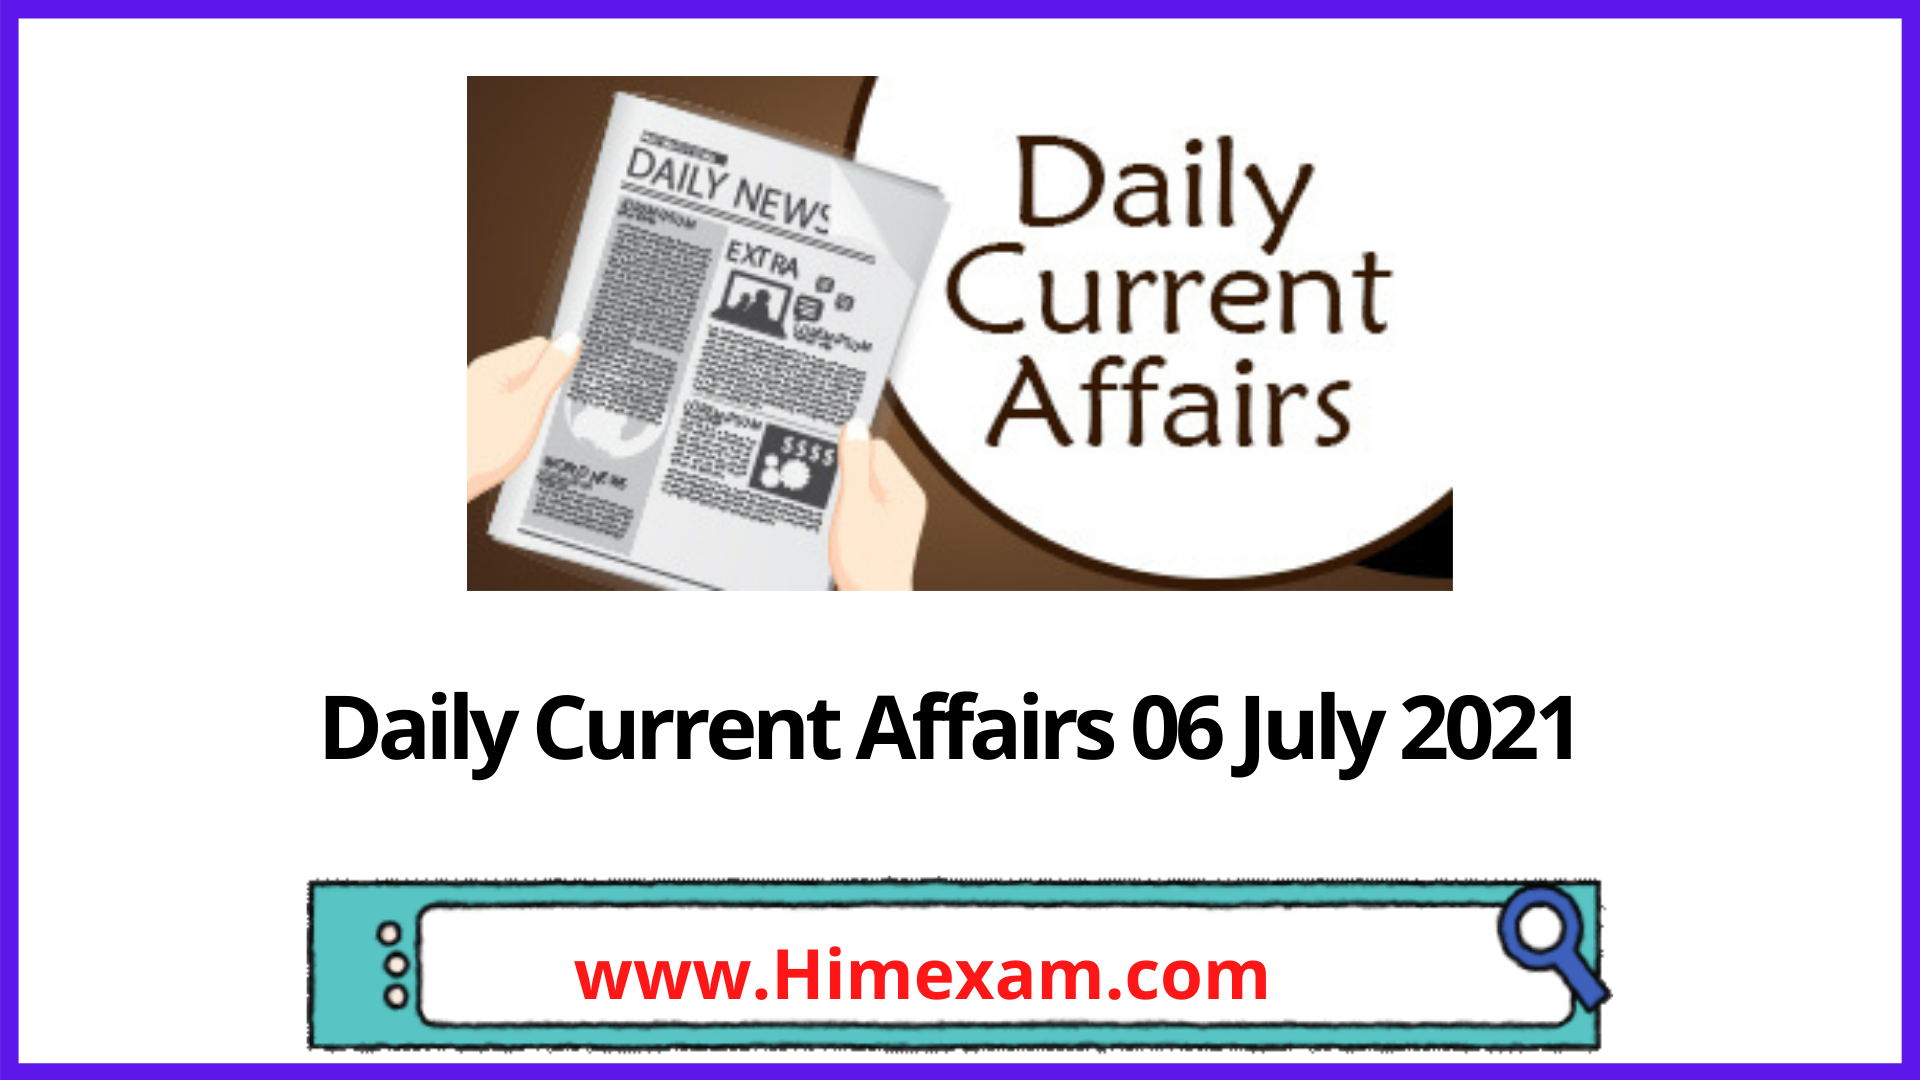 Daily Current Affairs 06 July 2021